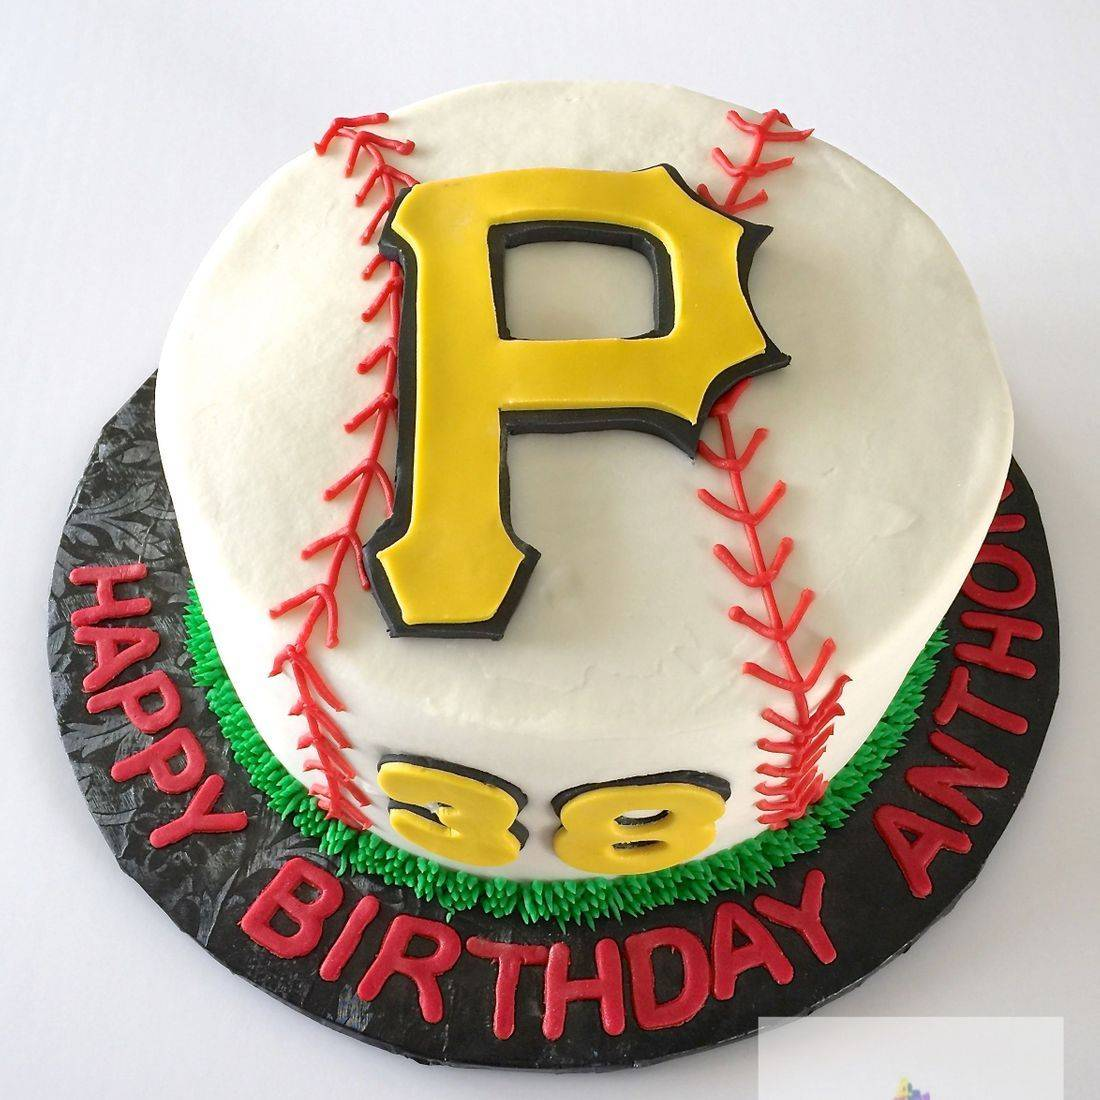 Pittsburgh Pirates Baseball Birthday Cake